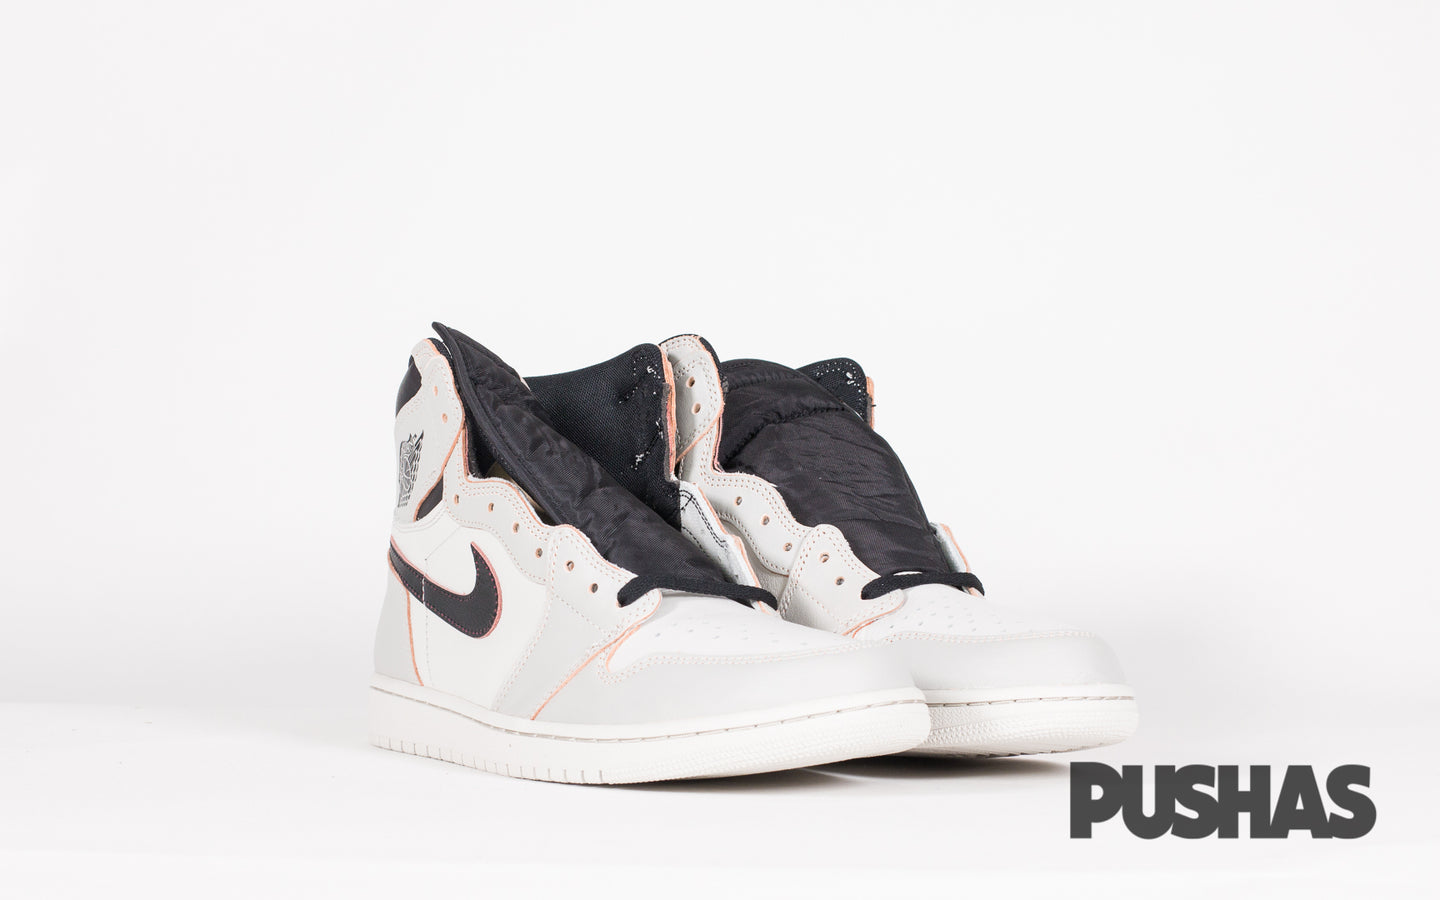 pushas-nike-Air-Jordan-1-NYC-to-Paris